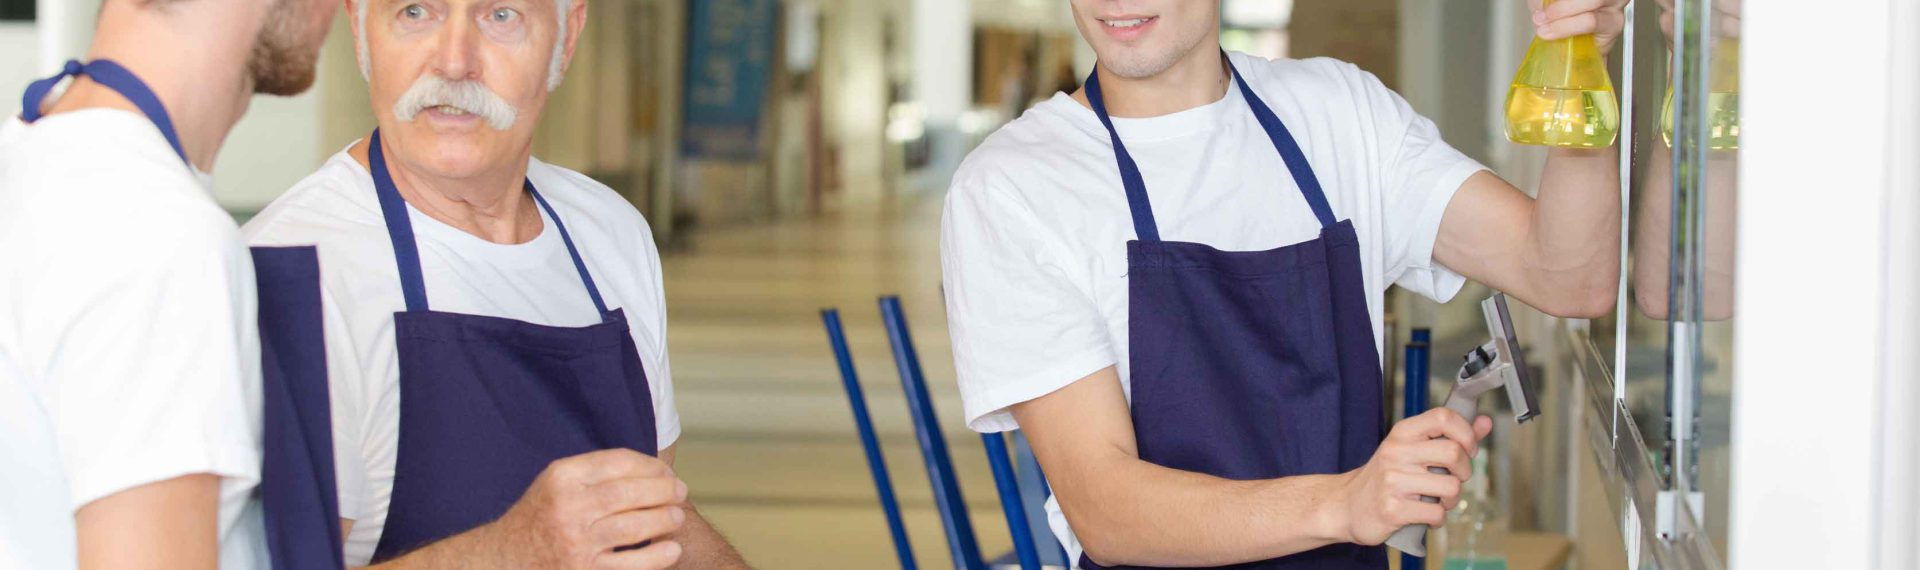 How To Set Up A Cleaning Business In The UK: A Guide